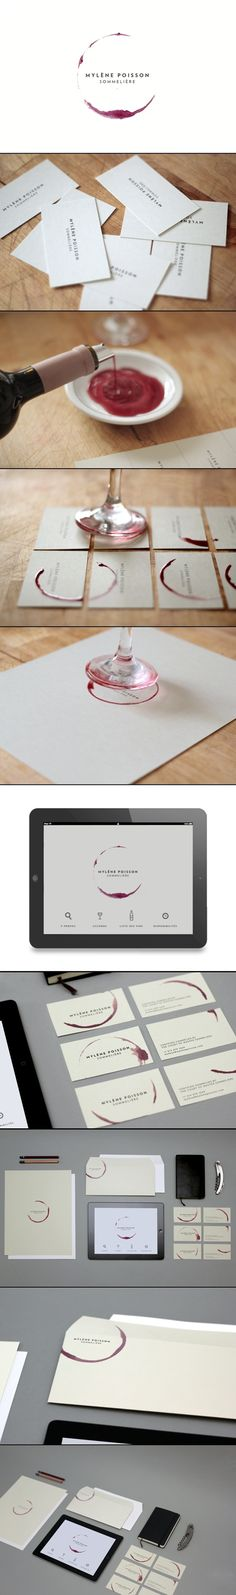 While this is a branding idea for a sommelier, I think this would be a neat way to dress up name cards for a wine dinner party.